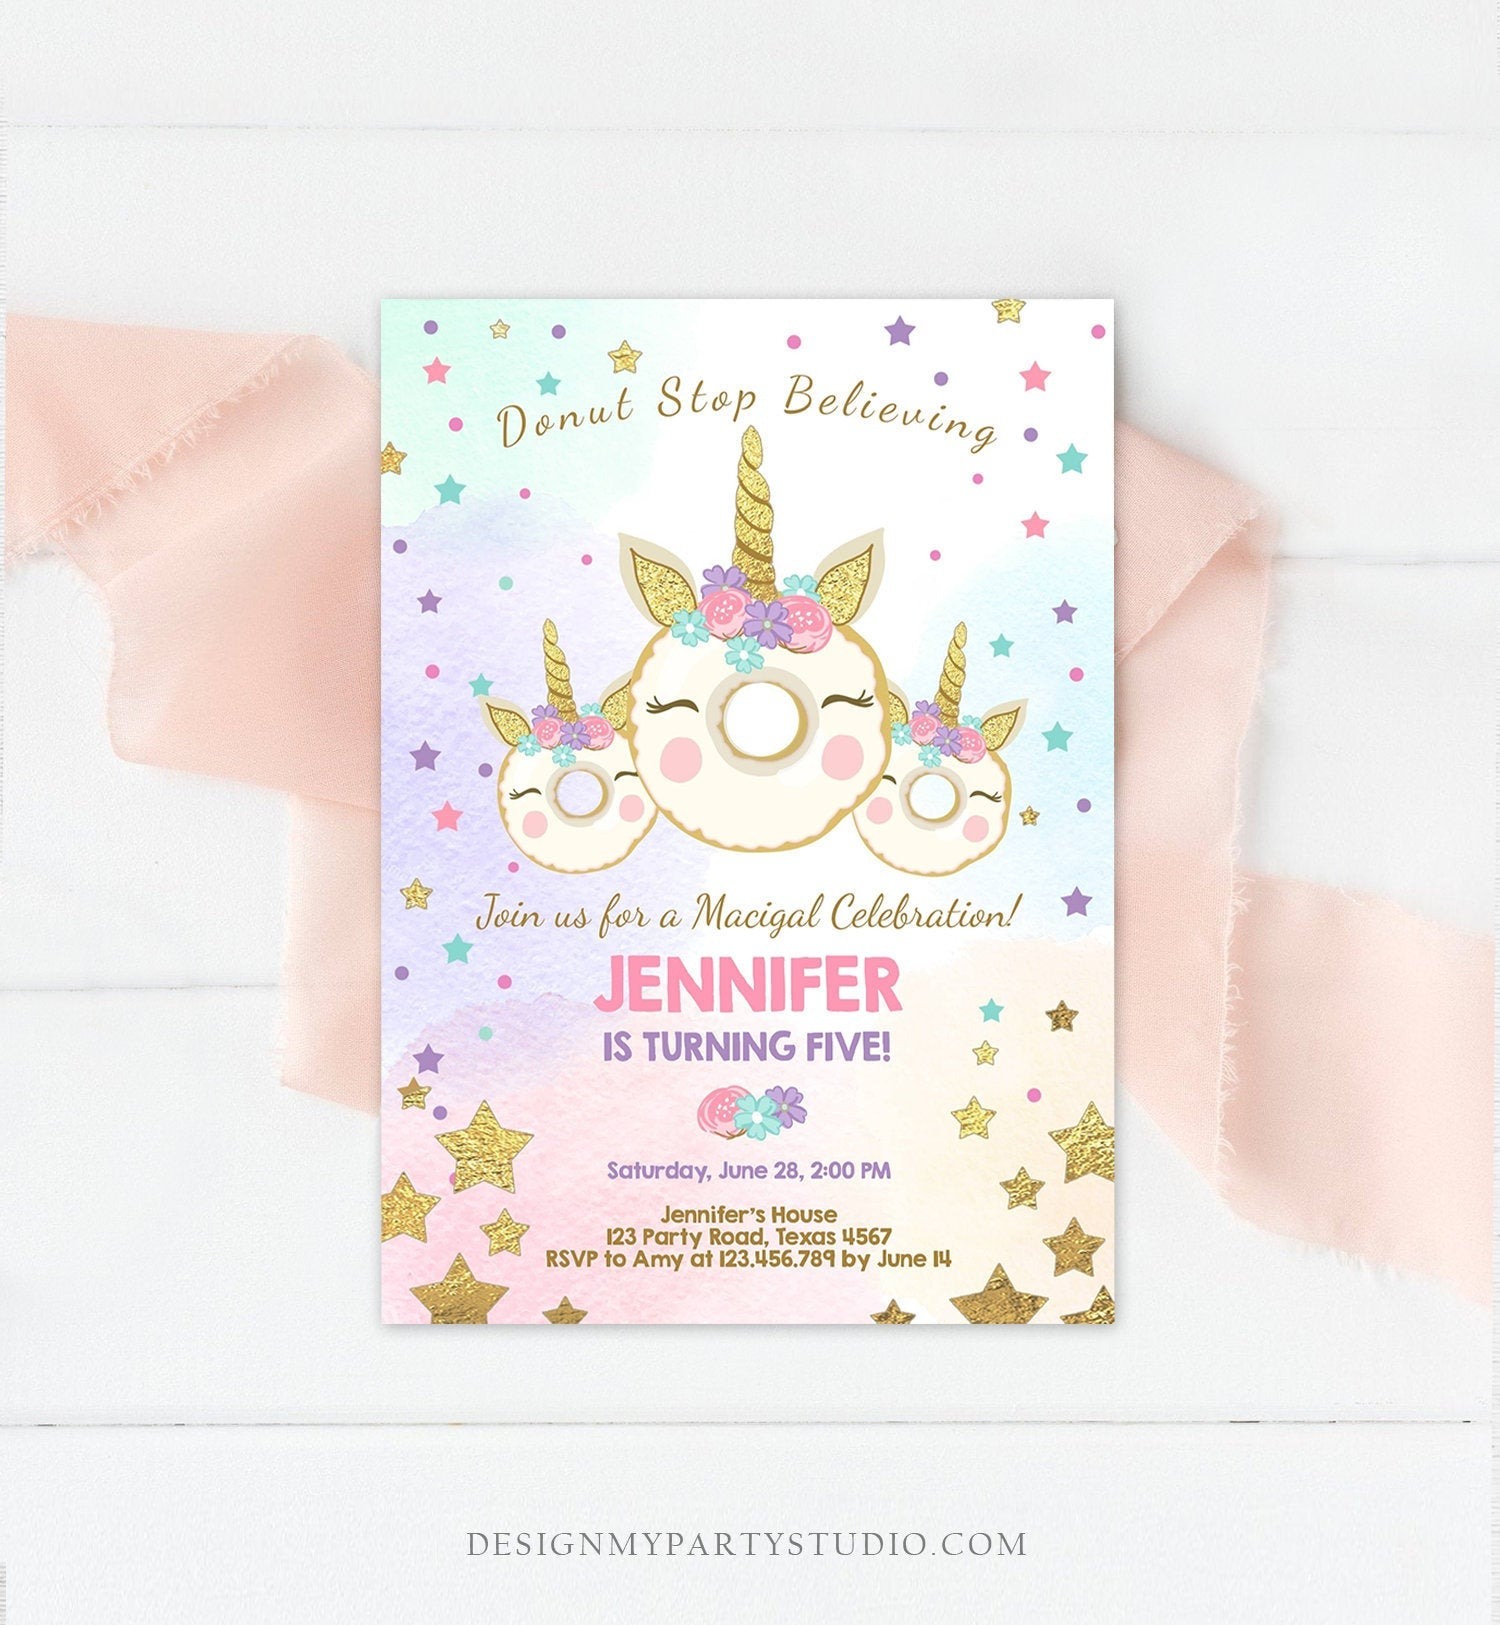 Editable Donut Unicorn Birthday Invitation Donut Stop Believing Magical Rainbow Party Doughnut Girl Pink Gold Corjl Template Printable 0041